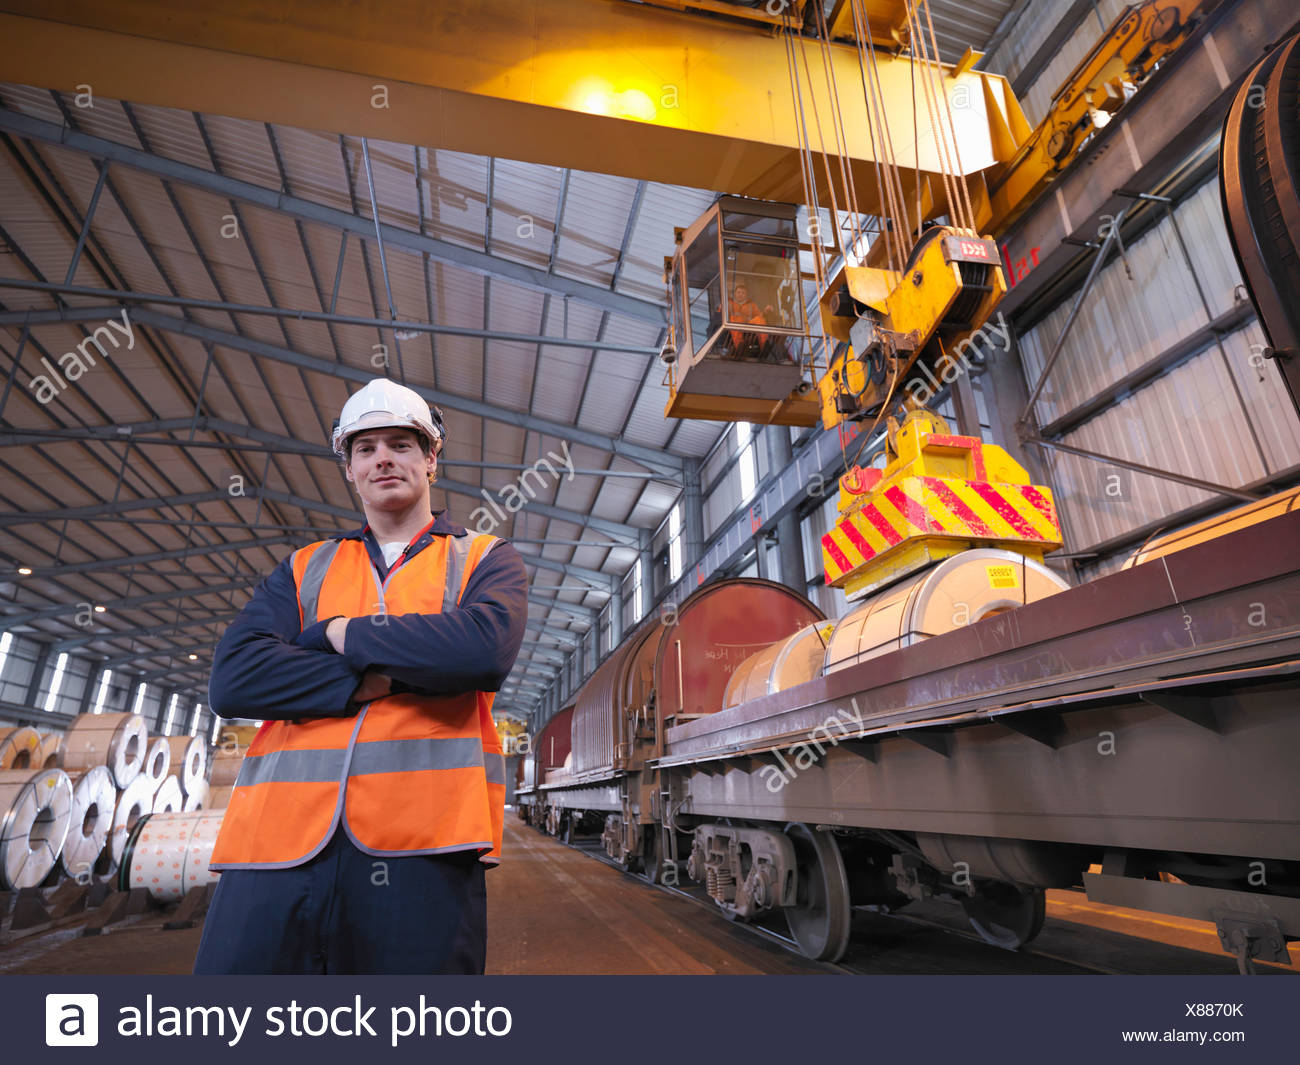 Port Worker In Front Of Train - Stock Image